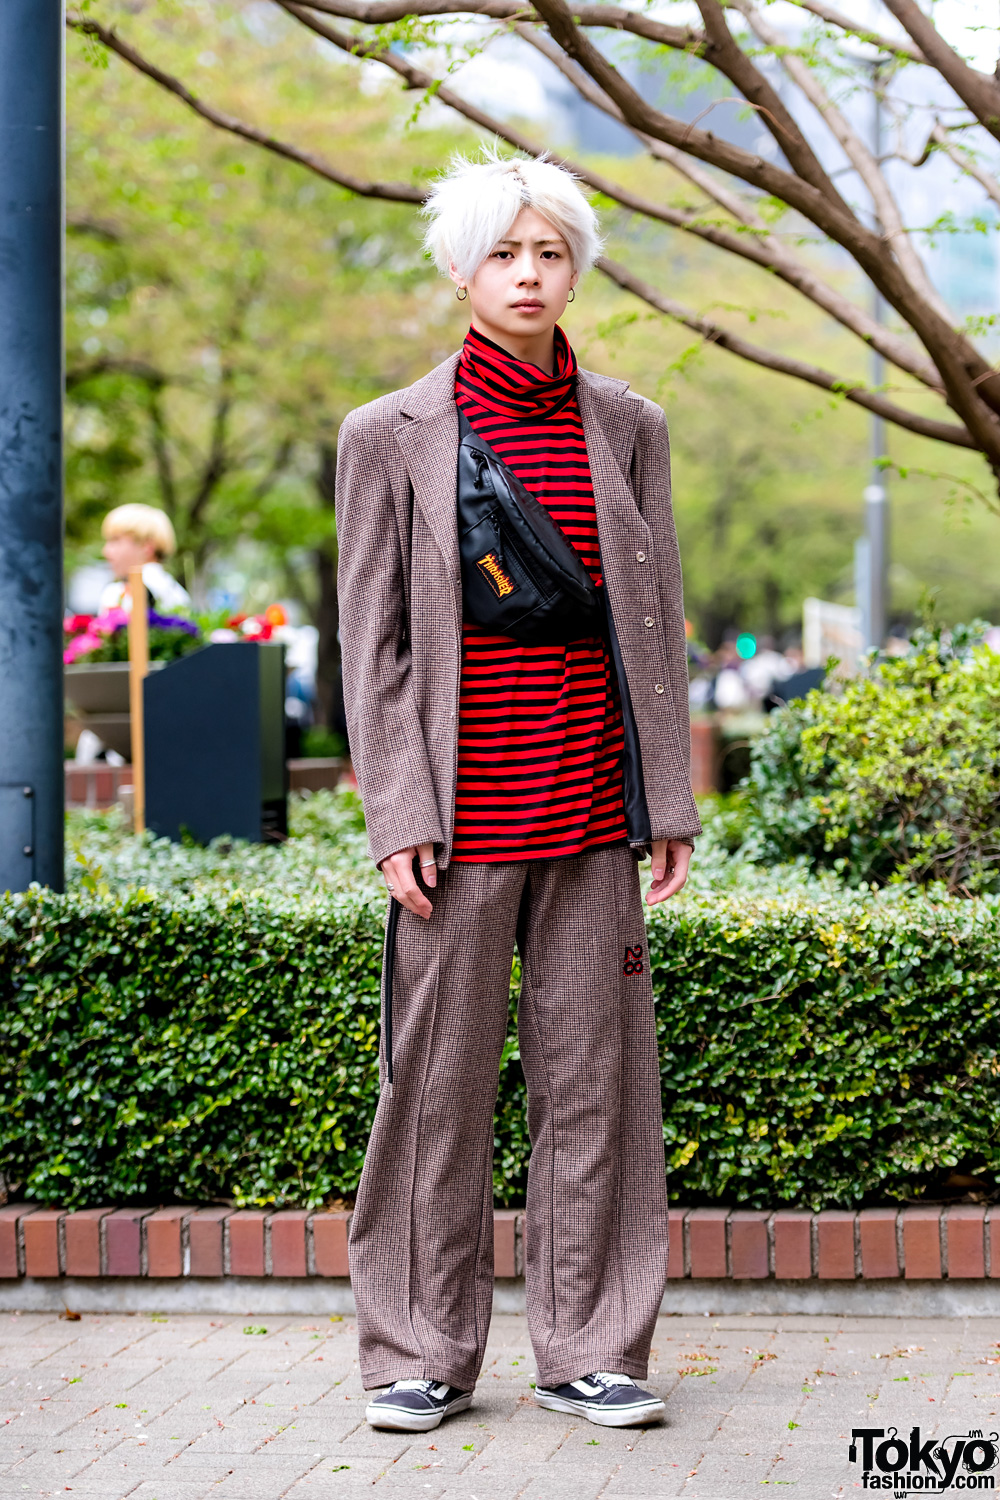 ebc6142e4 Tokyo Streetwear Style w/ OY Korea Tweed Suit, Live in the Moment Striped  Top & Vans Sneakers